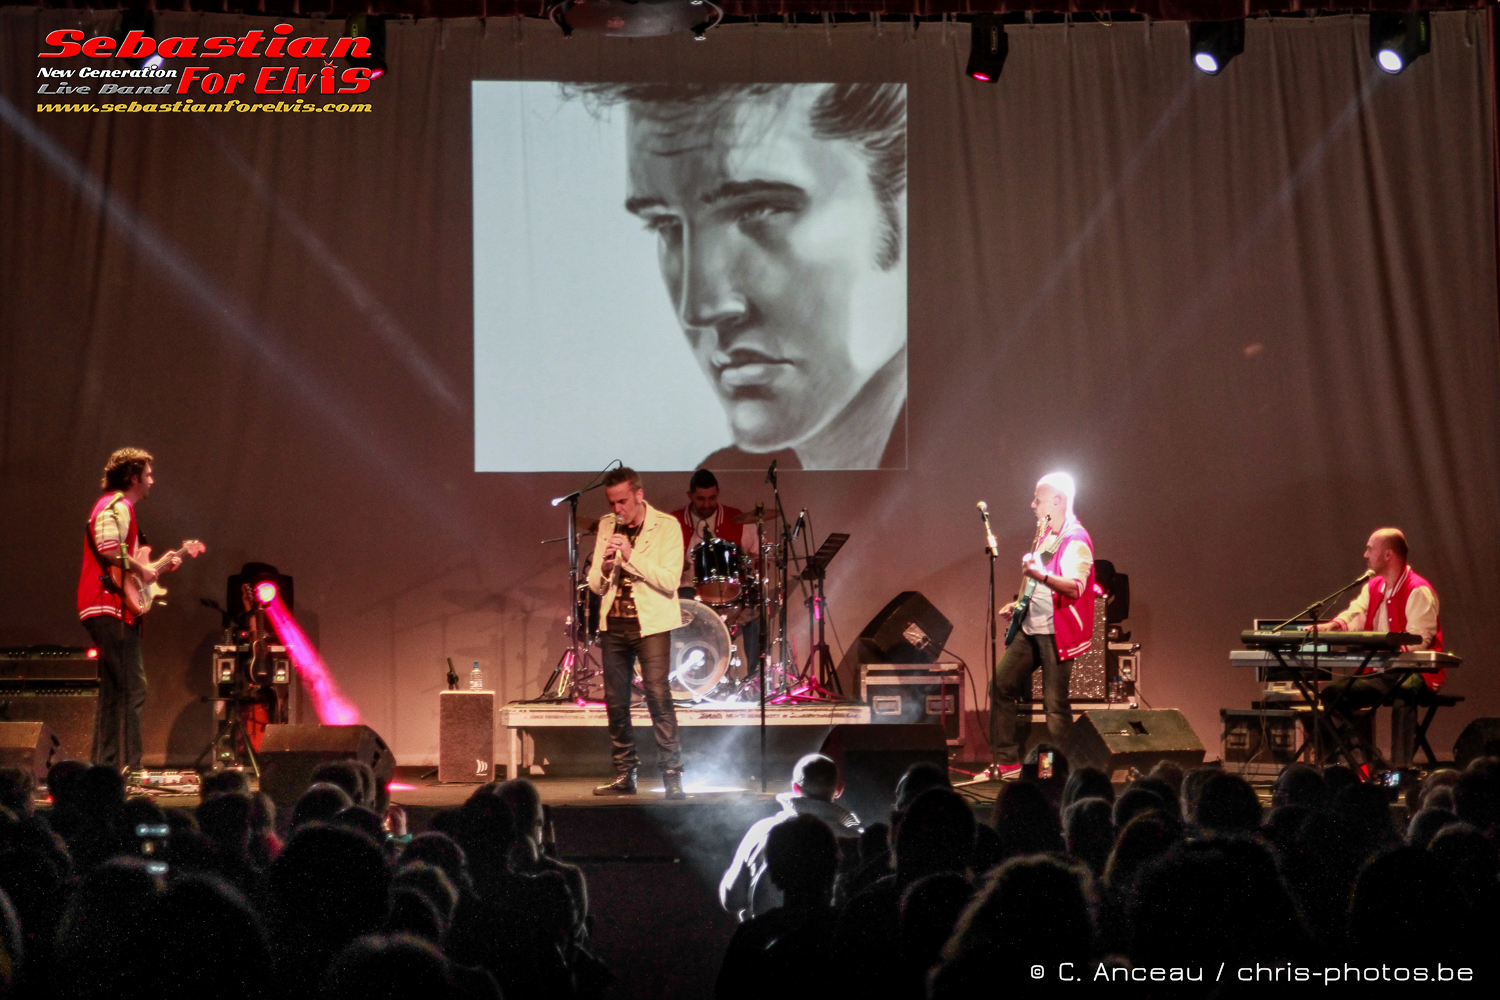 sebastian-for-elvis-happy-birthday-elvis-80years-casino-chaudfontaine-292.jpg